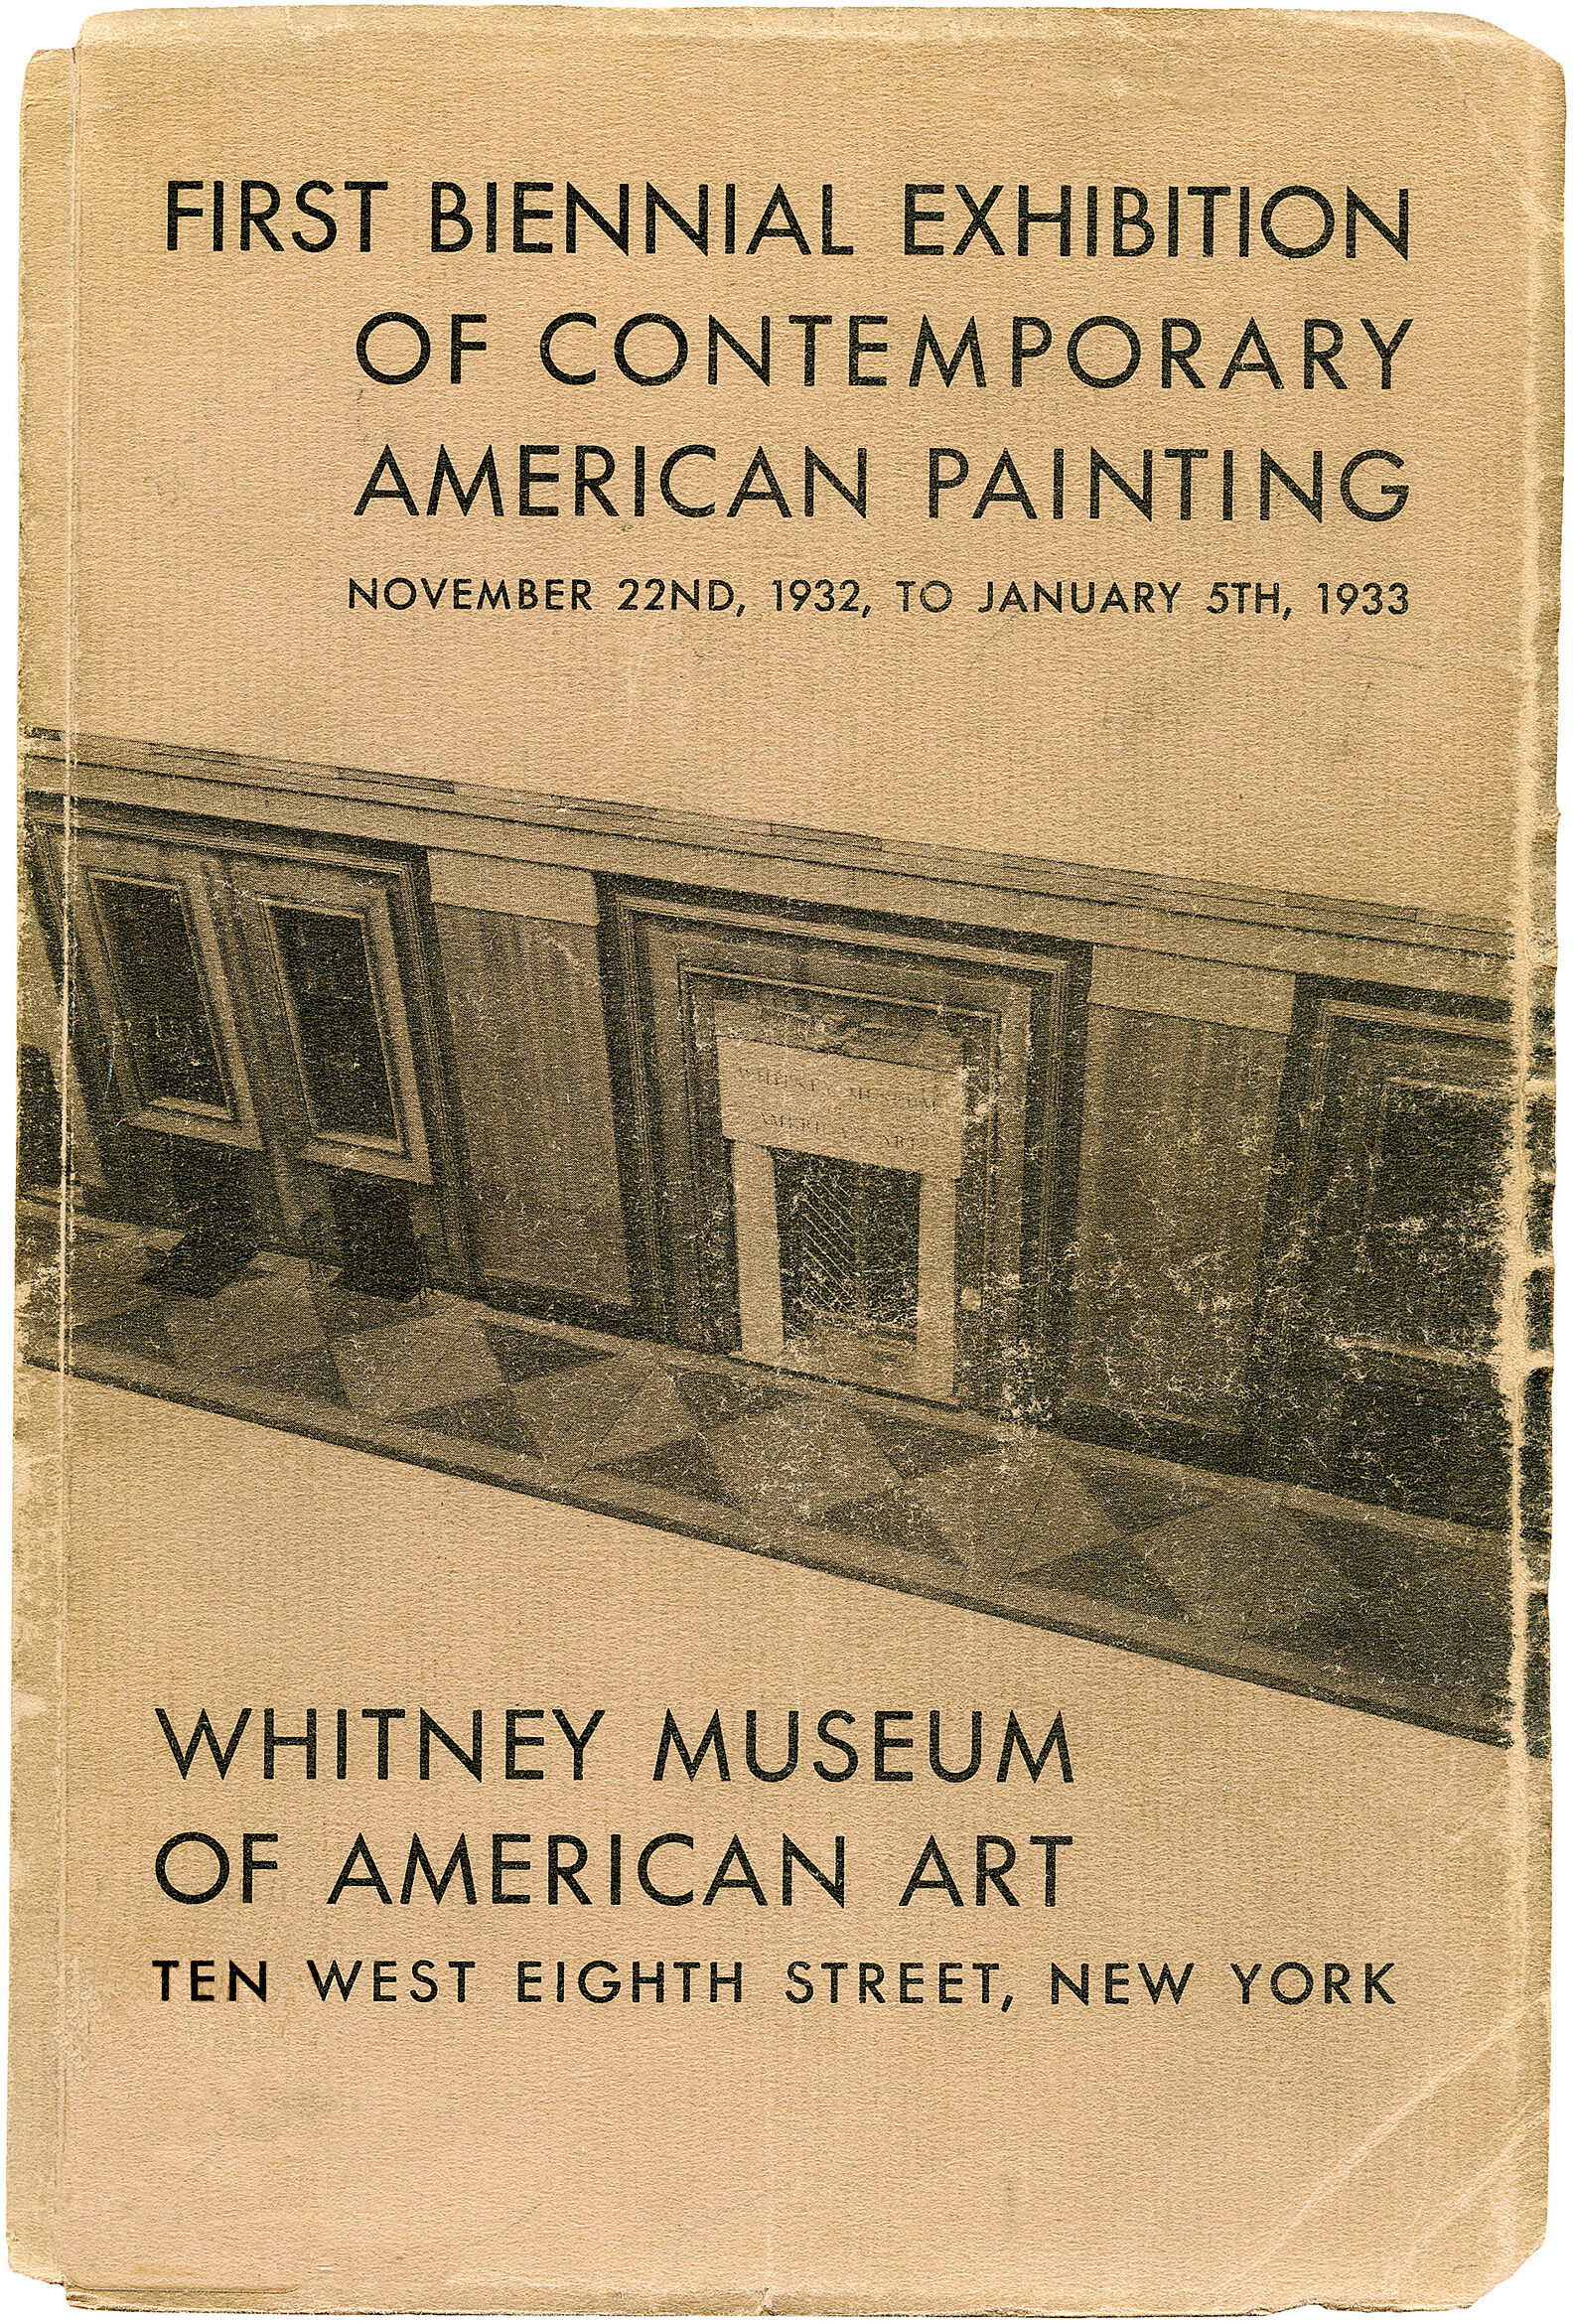 Cover for First Biennial Exhibition of Contemporary American Painting catalogue